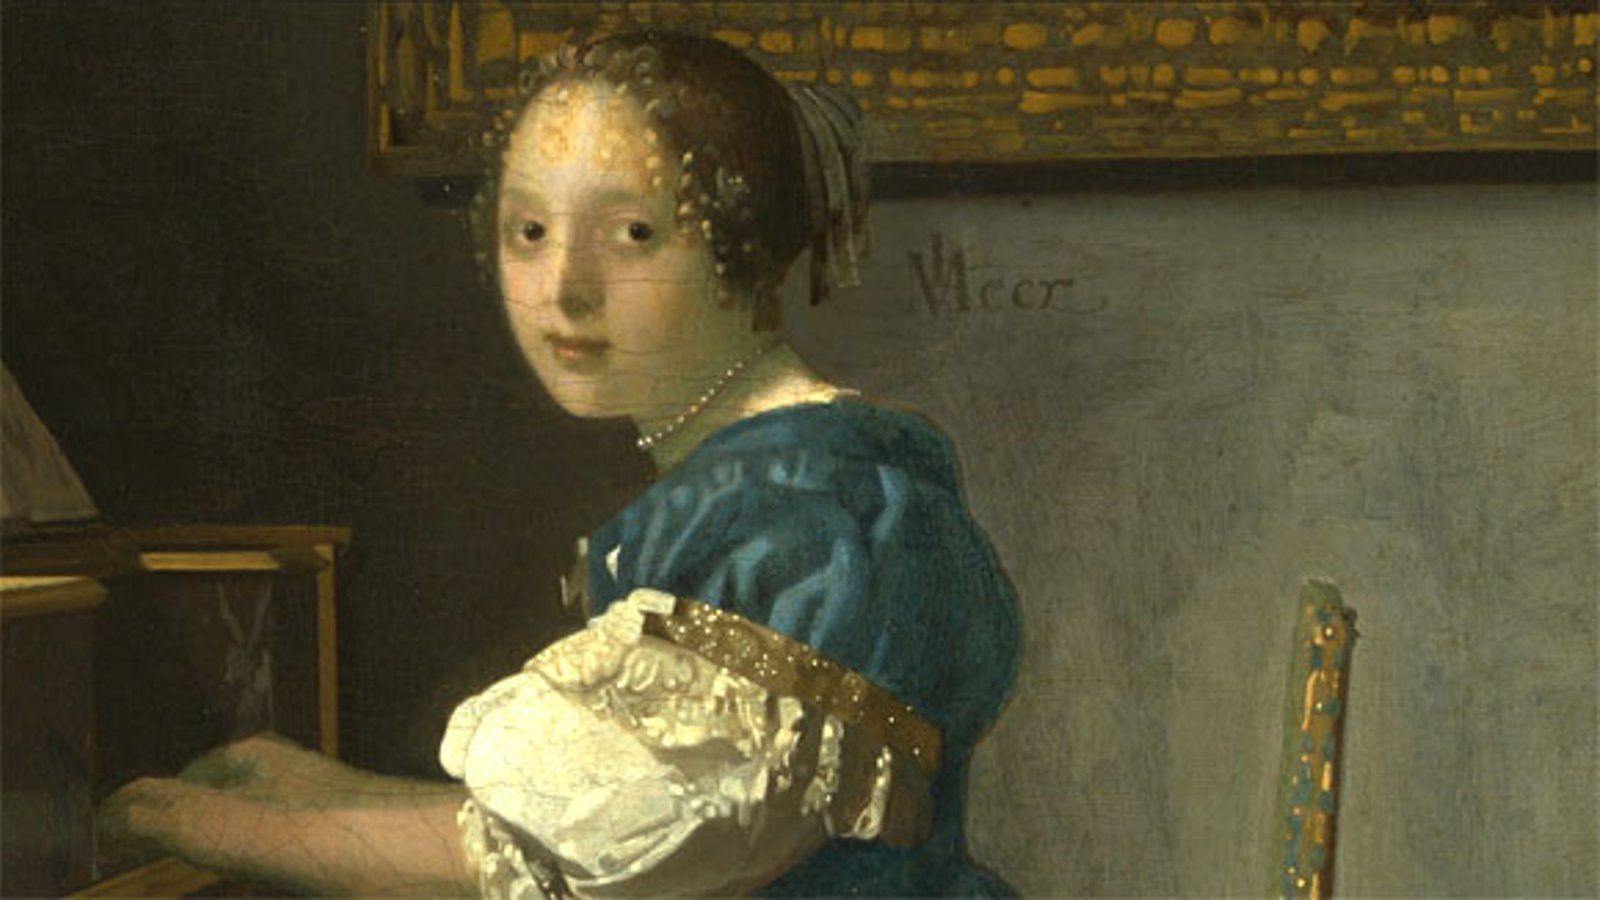 Exhibition on Screen - Vermeer and Music